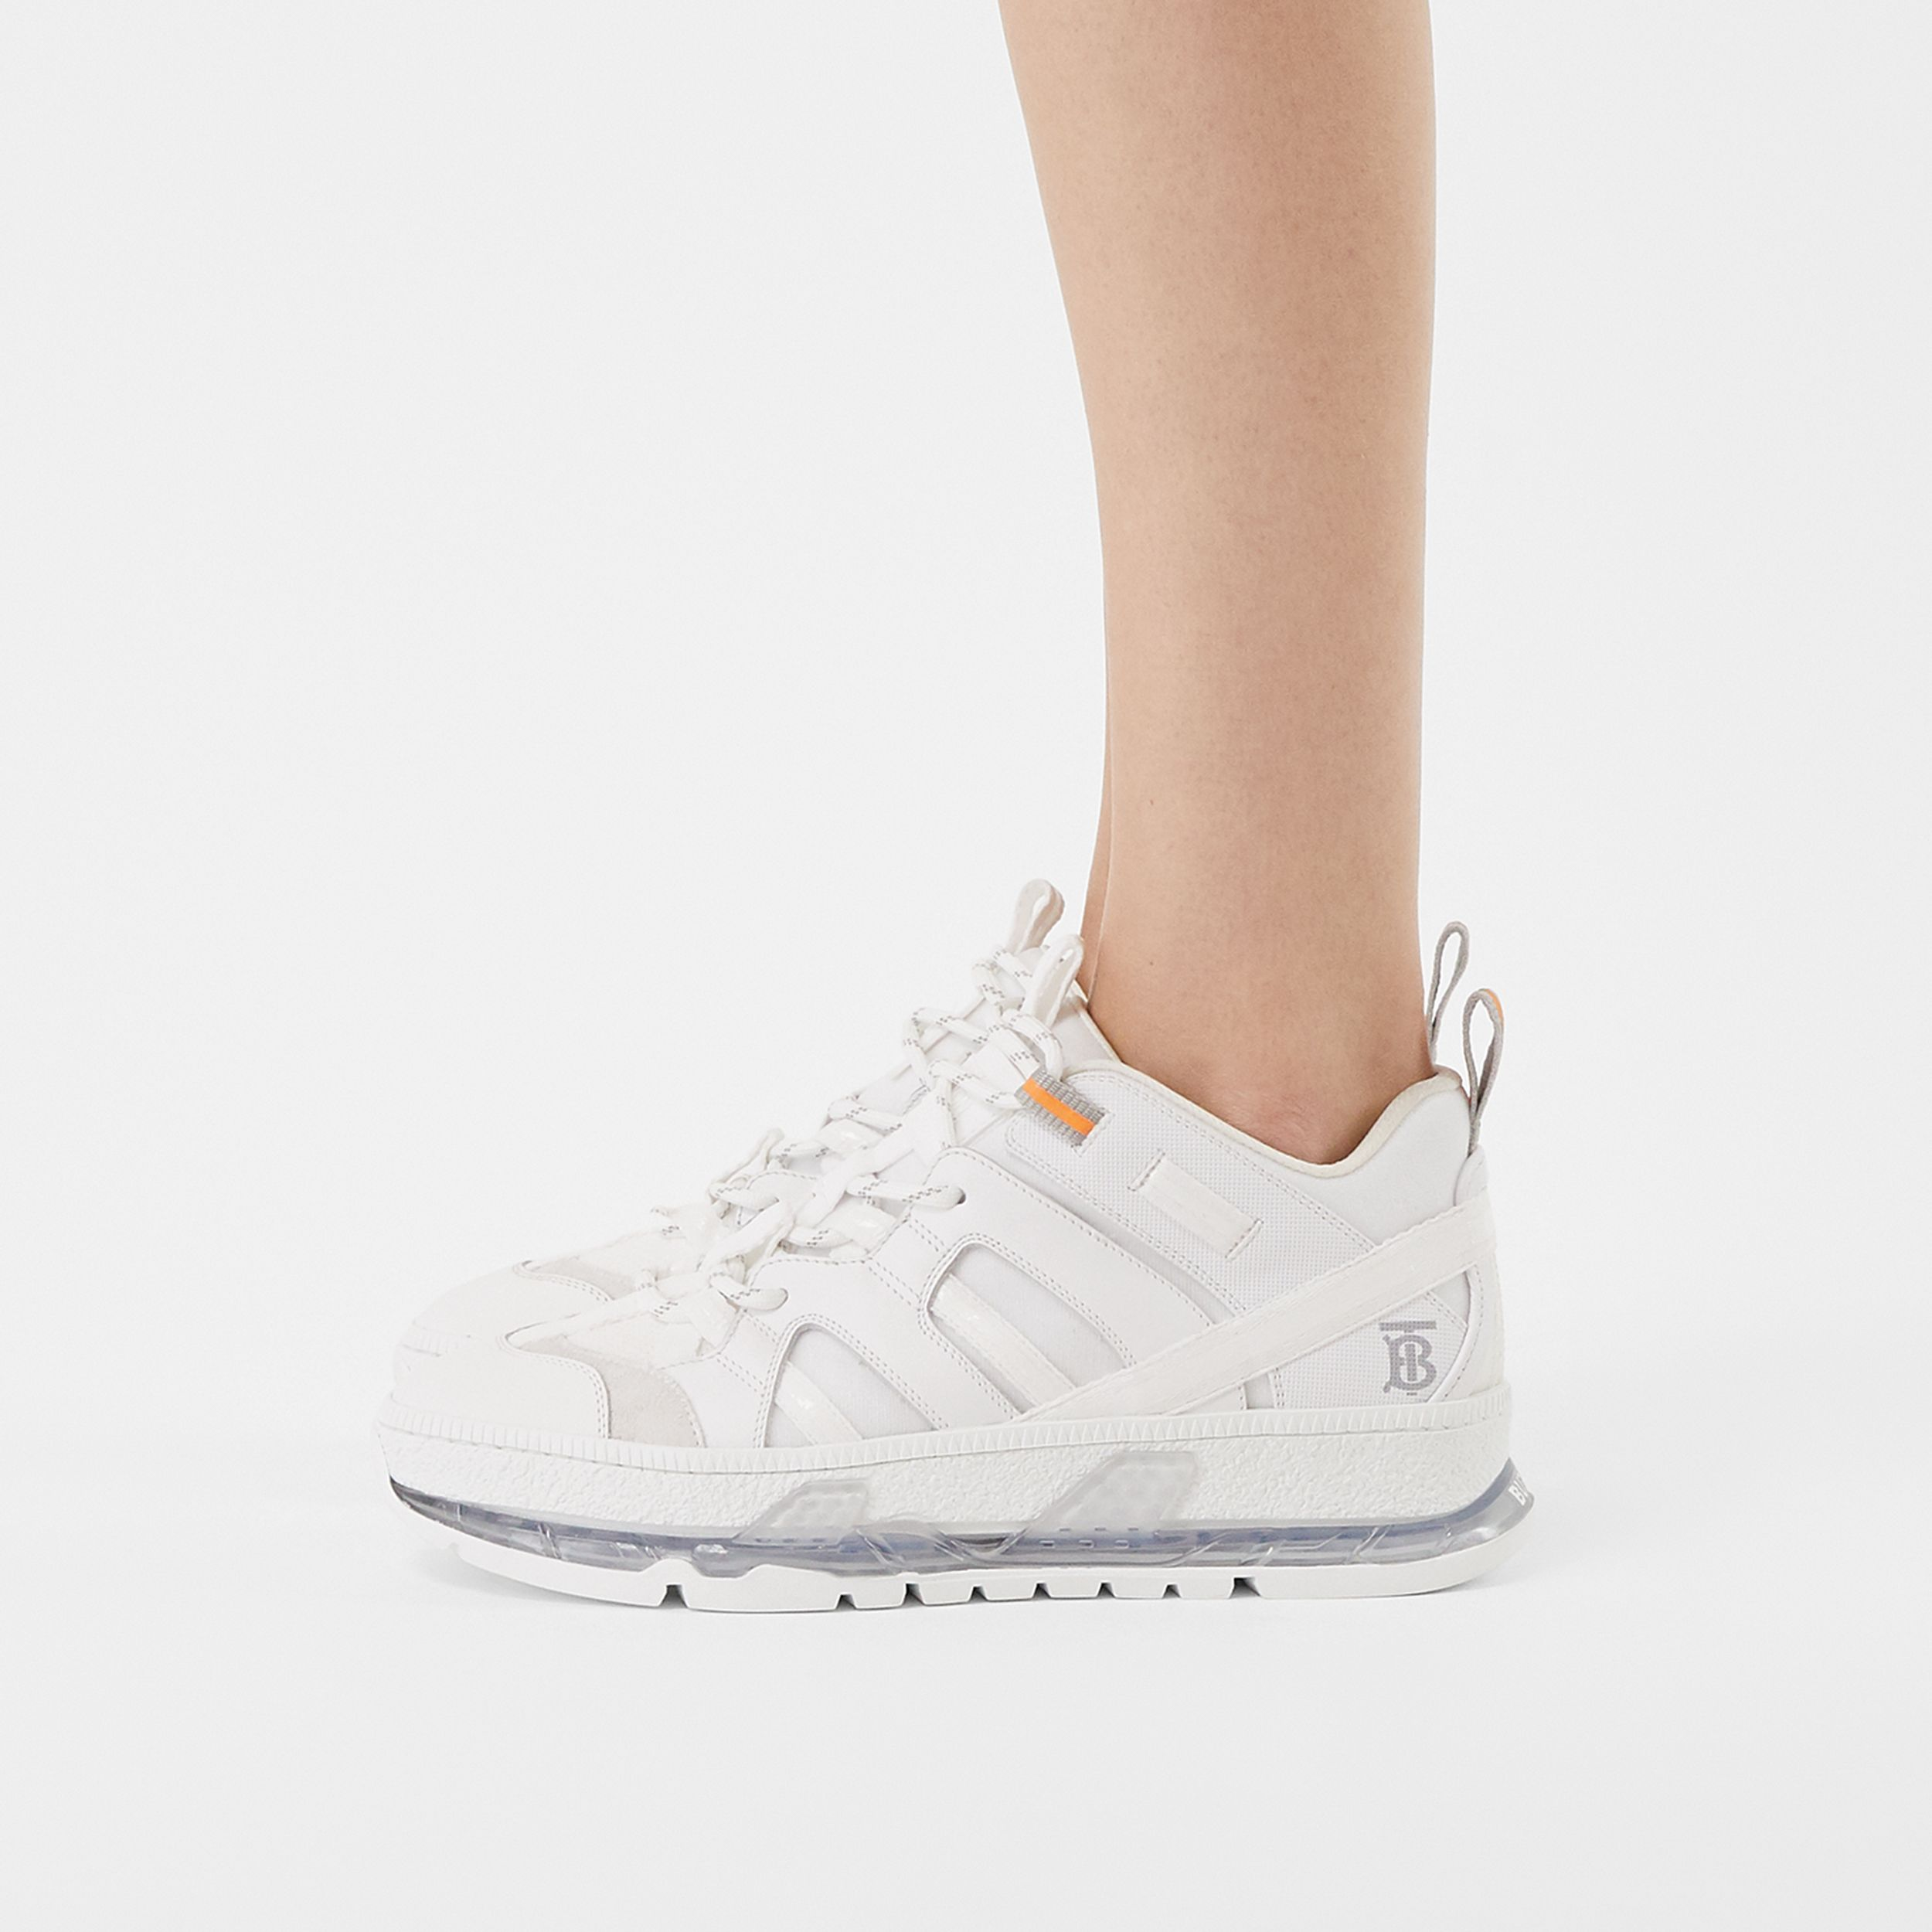 Nylon and Leather Union Sneakers in Optic White - Women | Burberry - 3